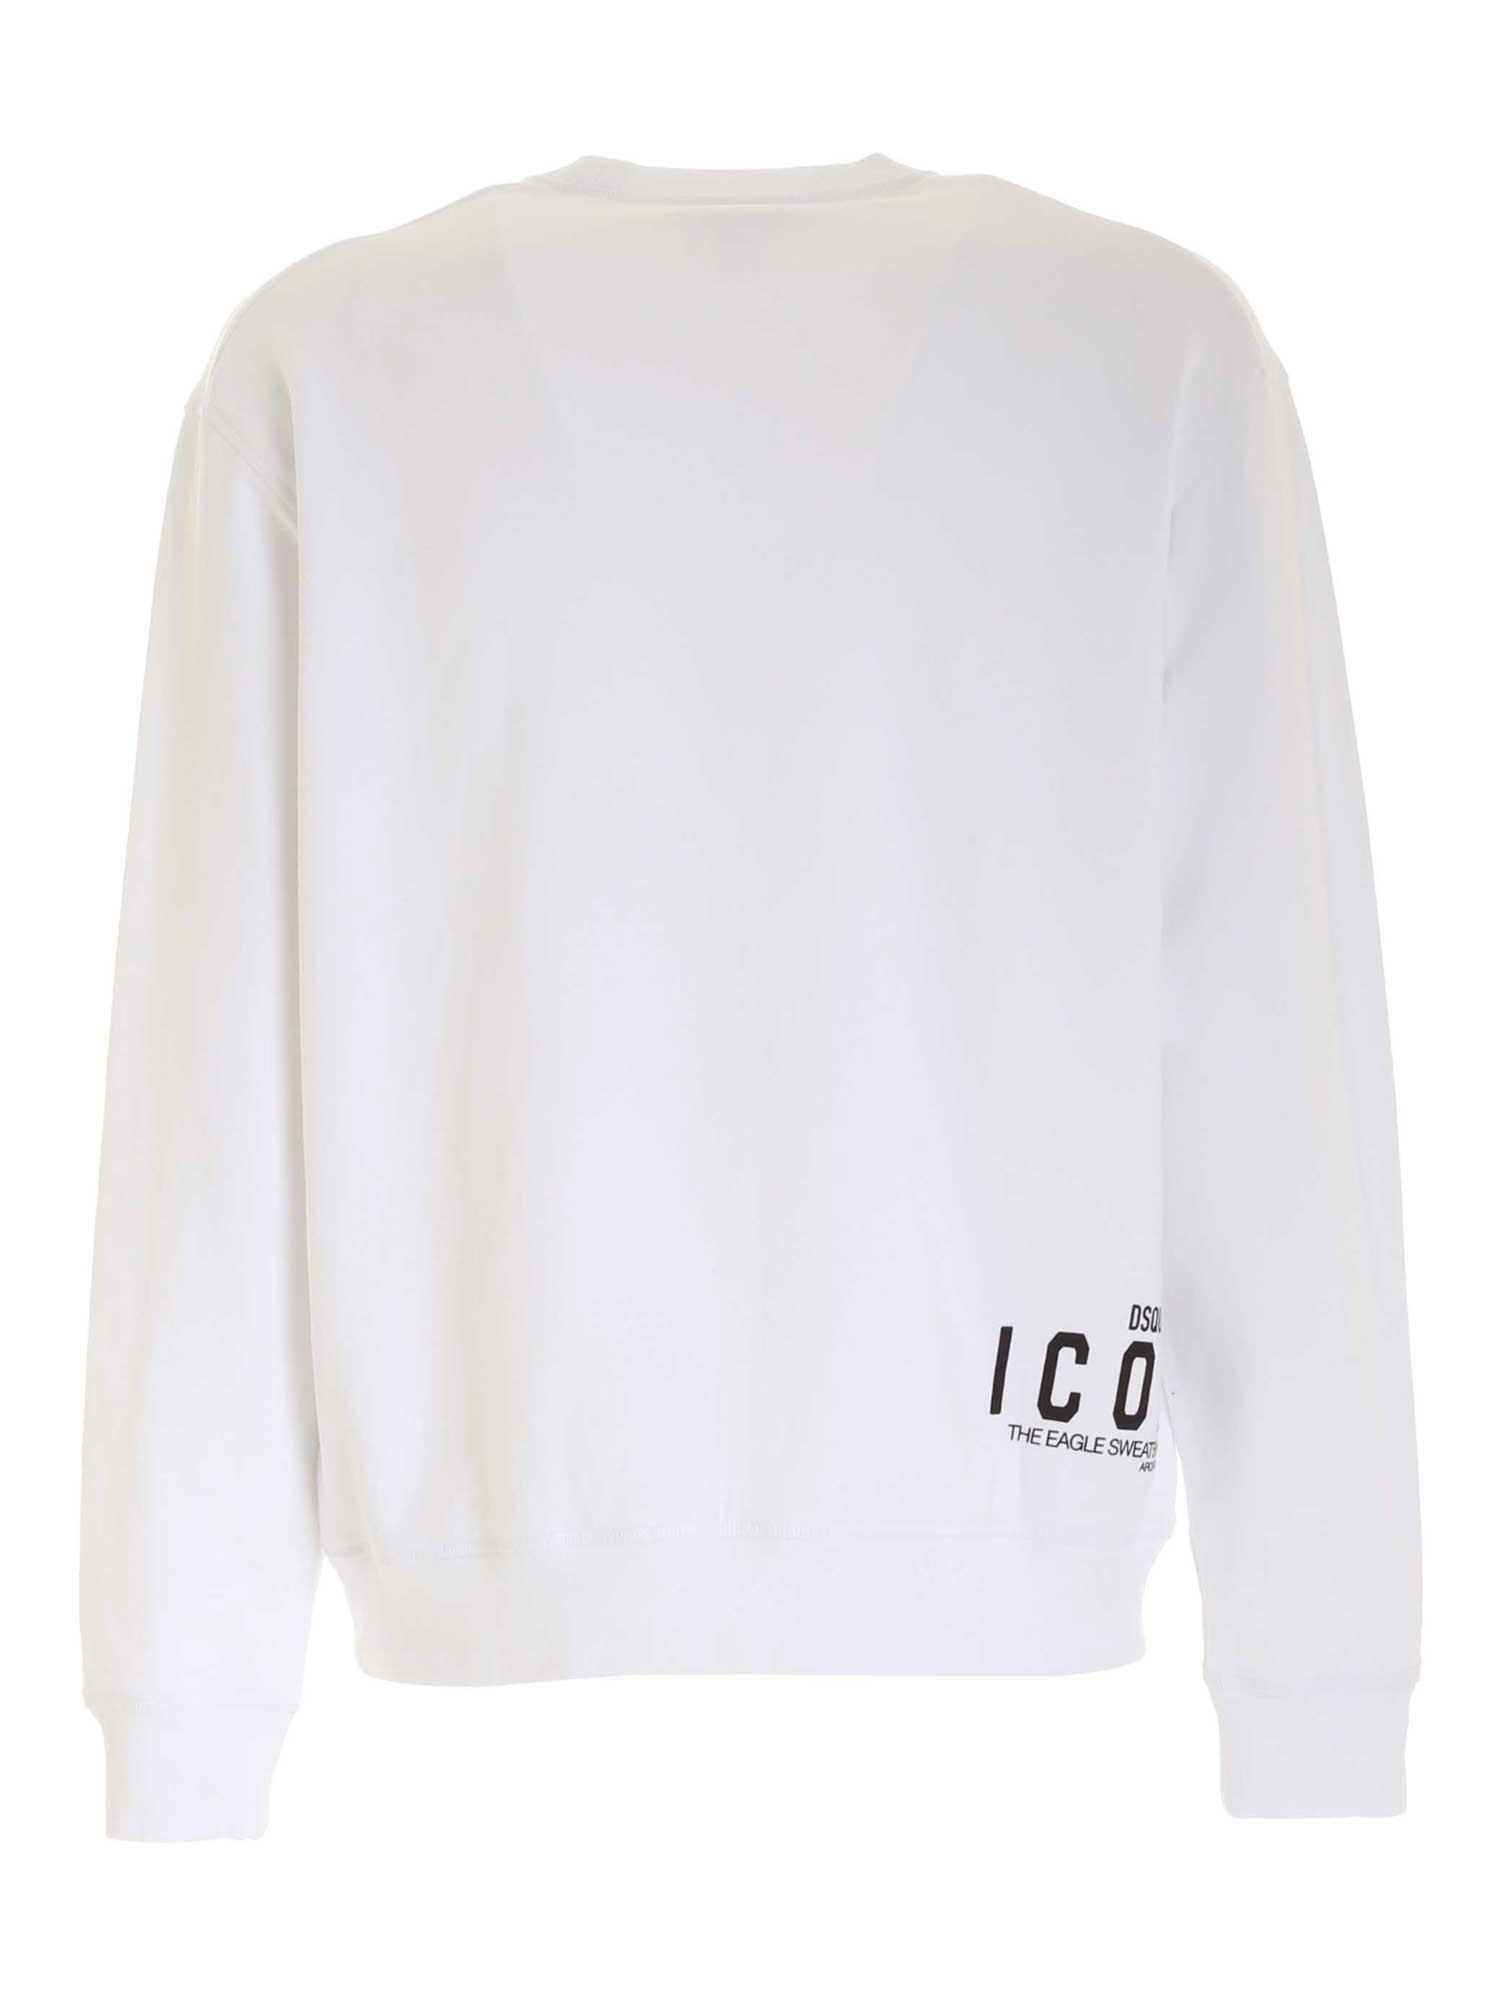 CONTRASTING PRINT SWEATSHIRT IN WHITE